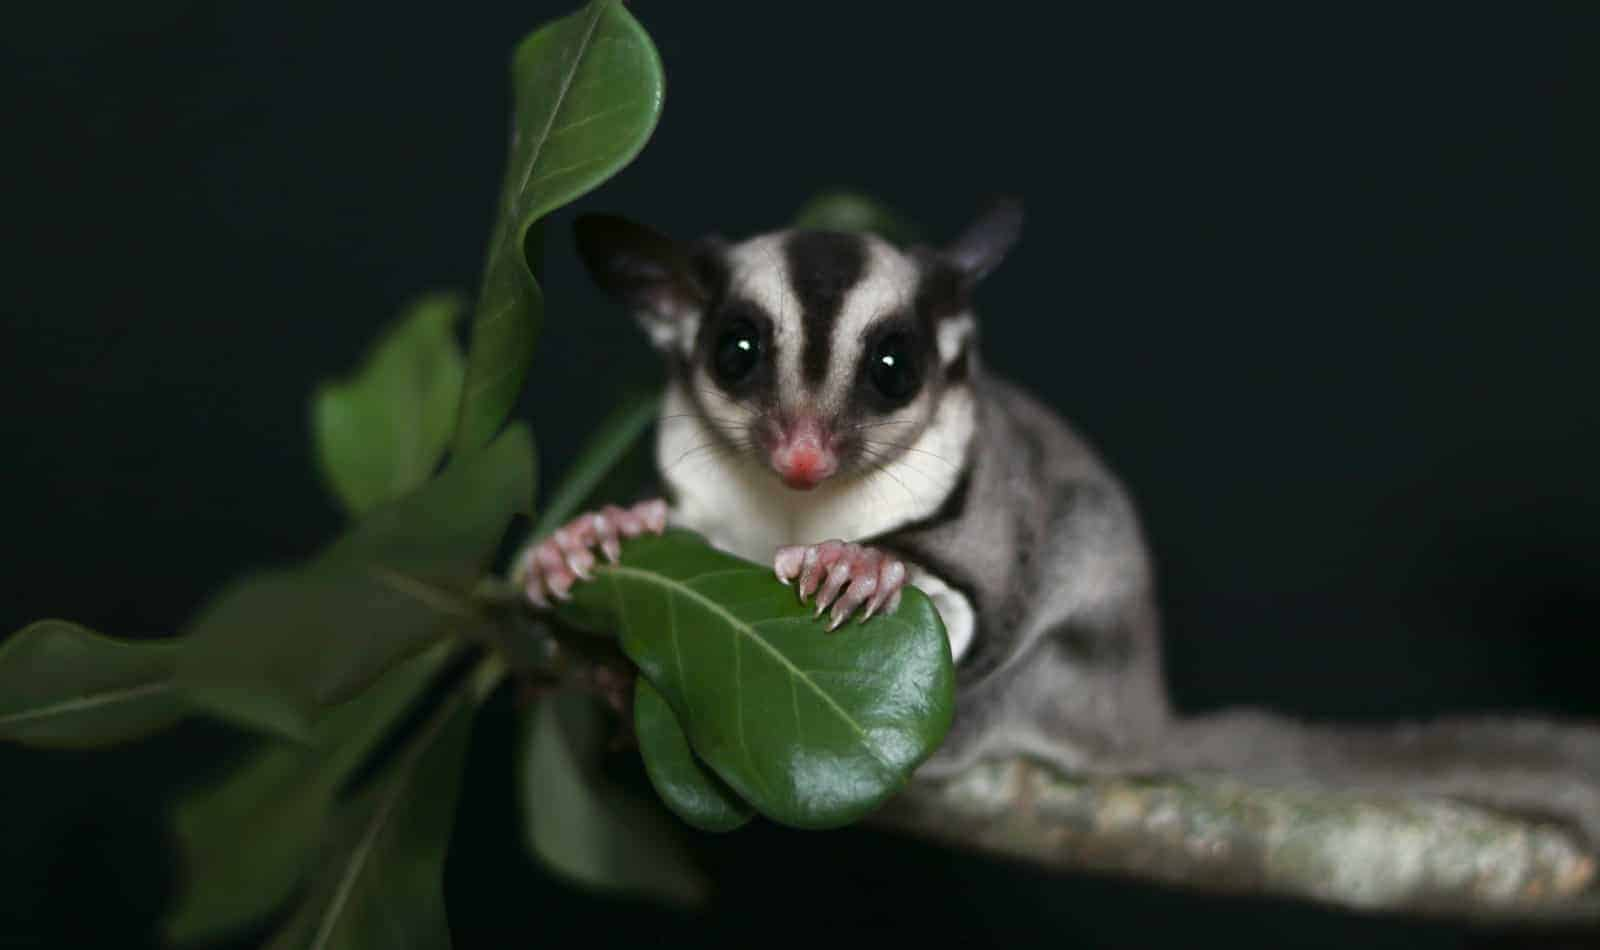 Looking for low cost or free sugar gliders for adoption in the US? Check out these resources for finding reputable breeders & rescues!